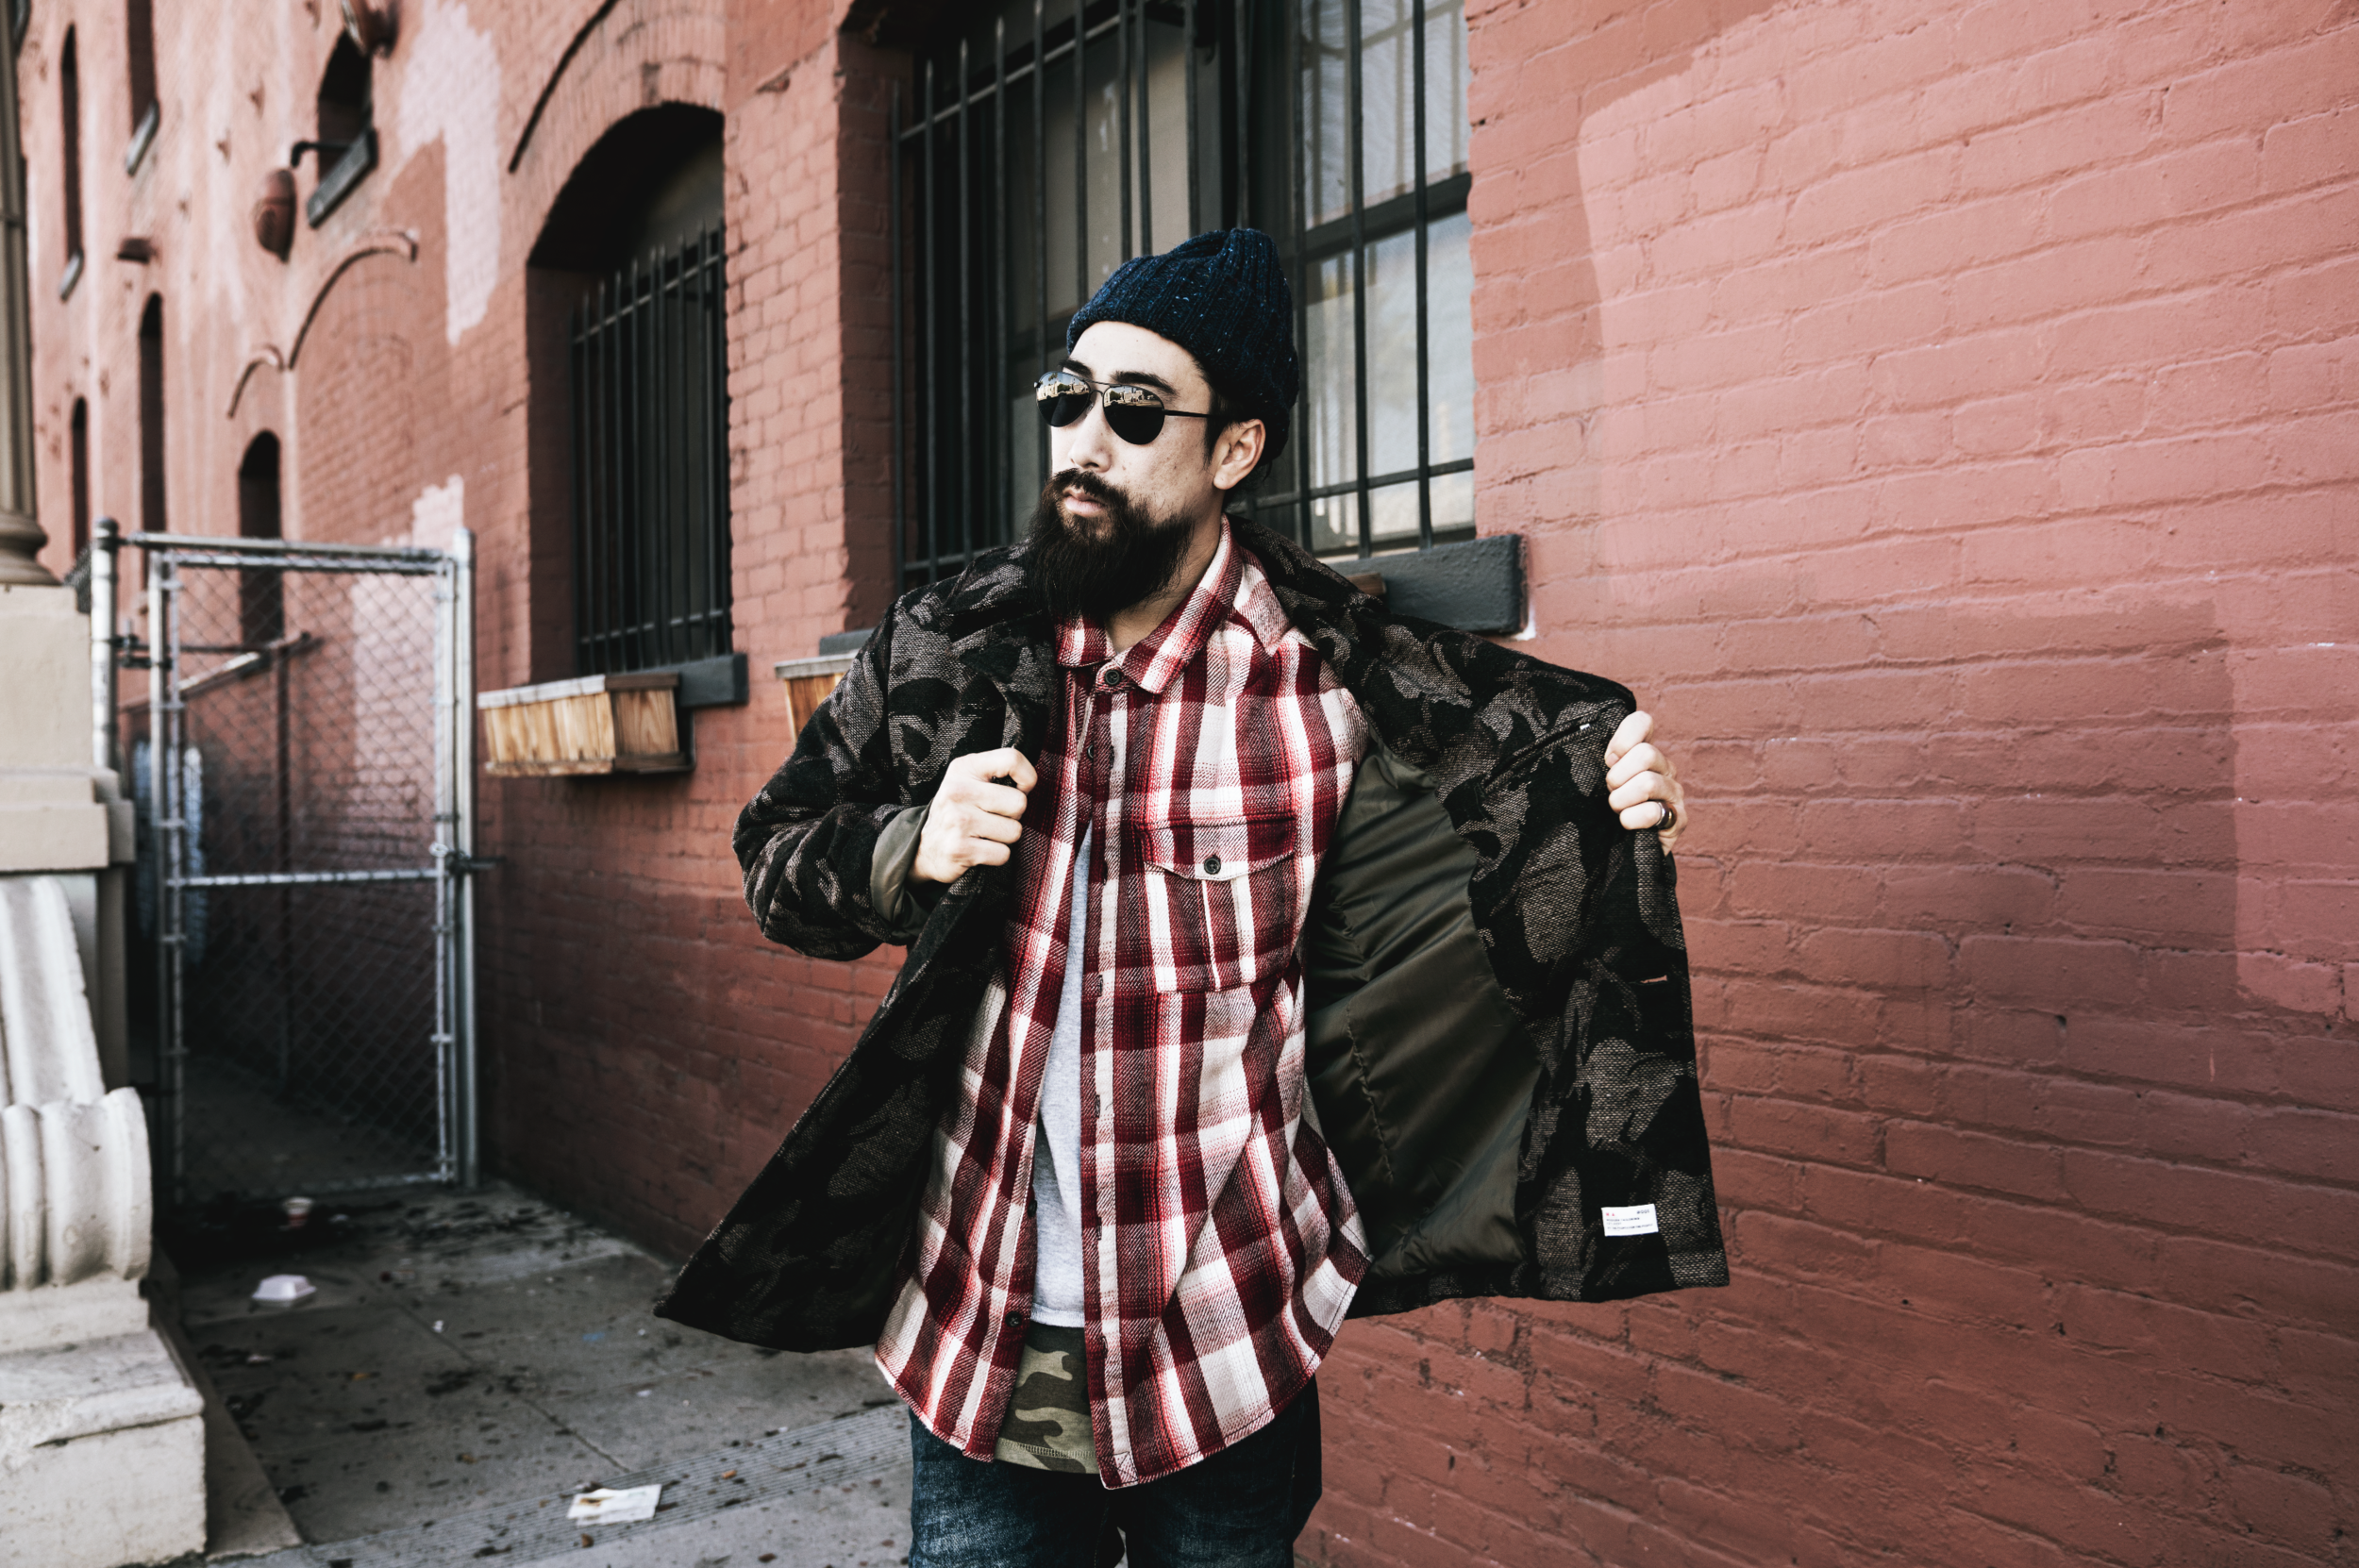 justfeng ryan feng quest crew fashion men style asian sexy  beard GQ street style